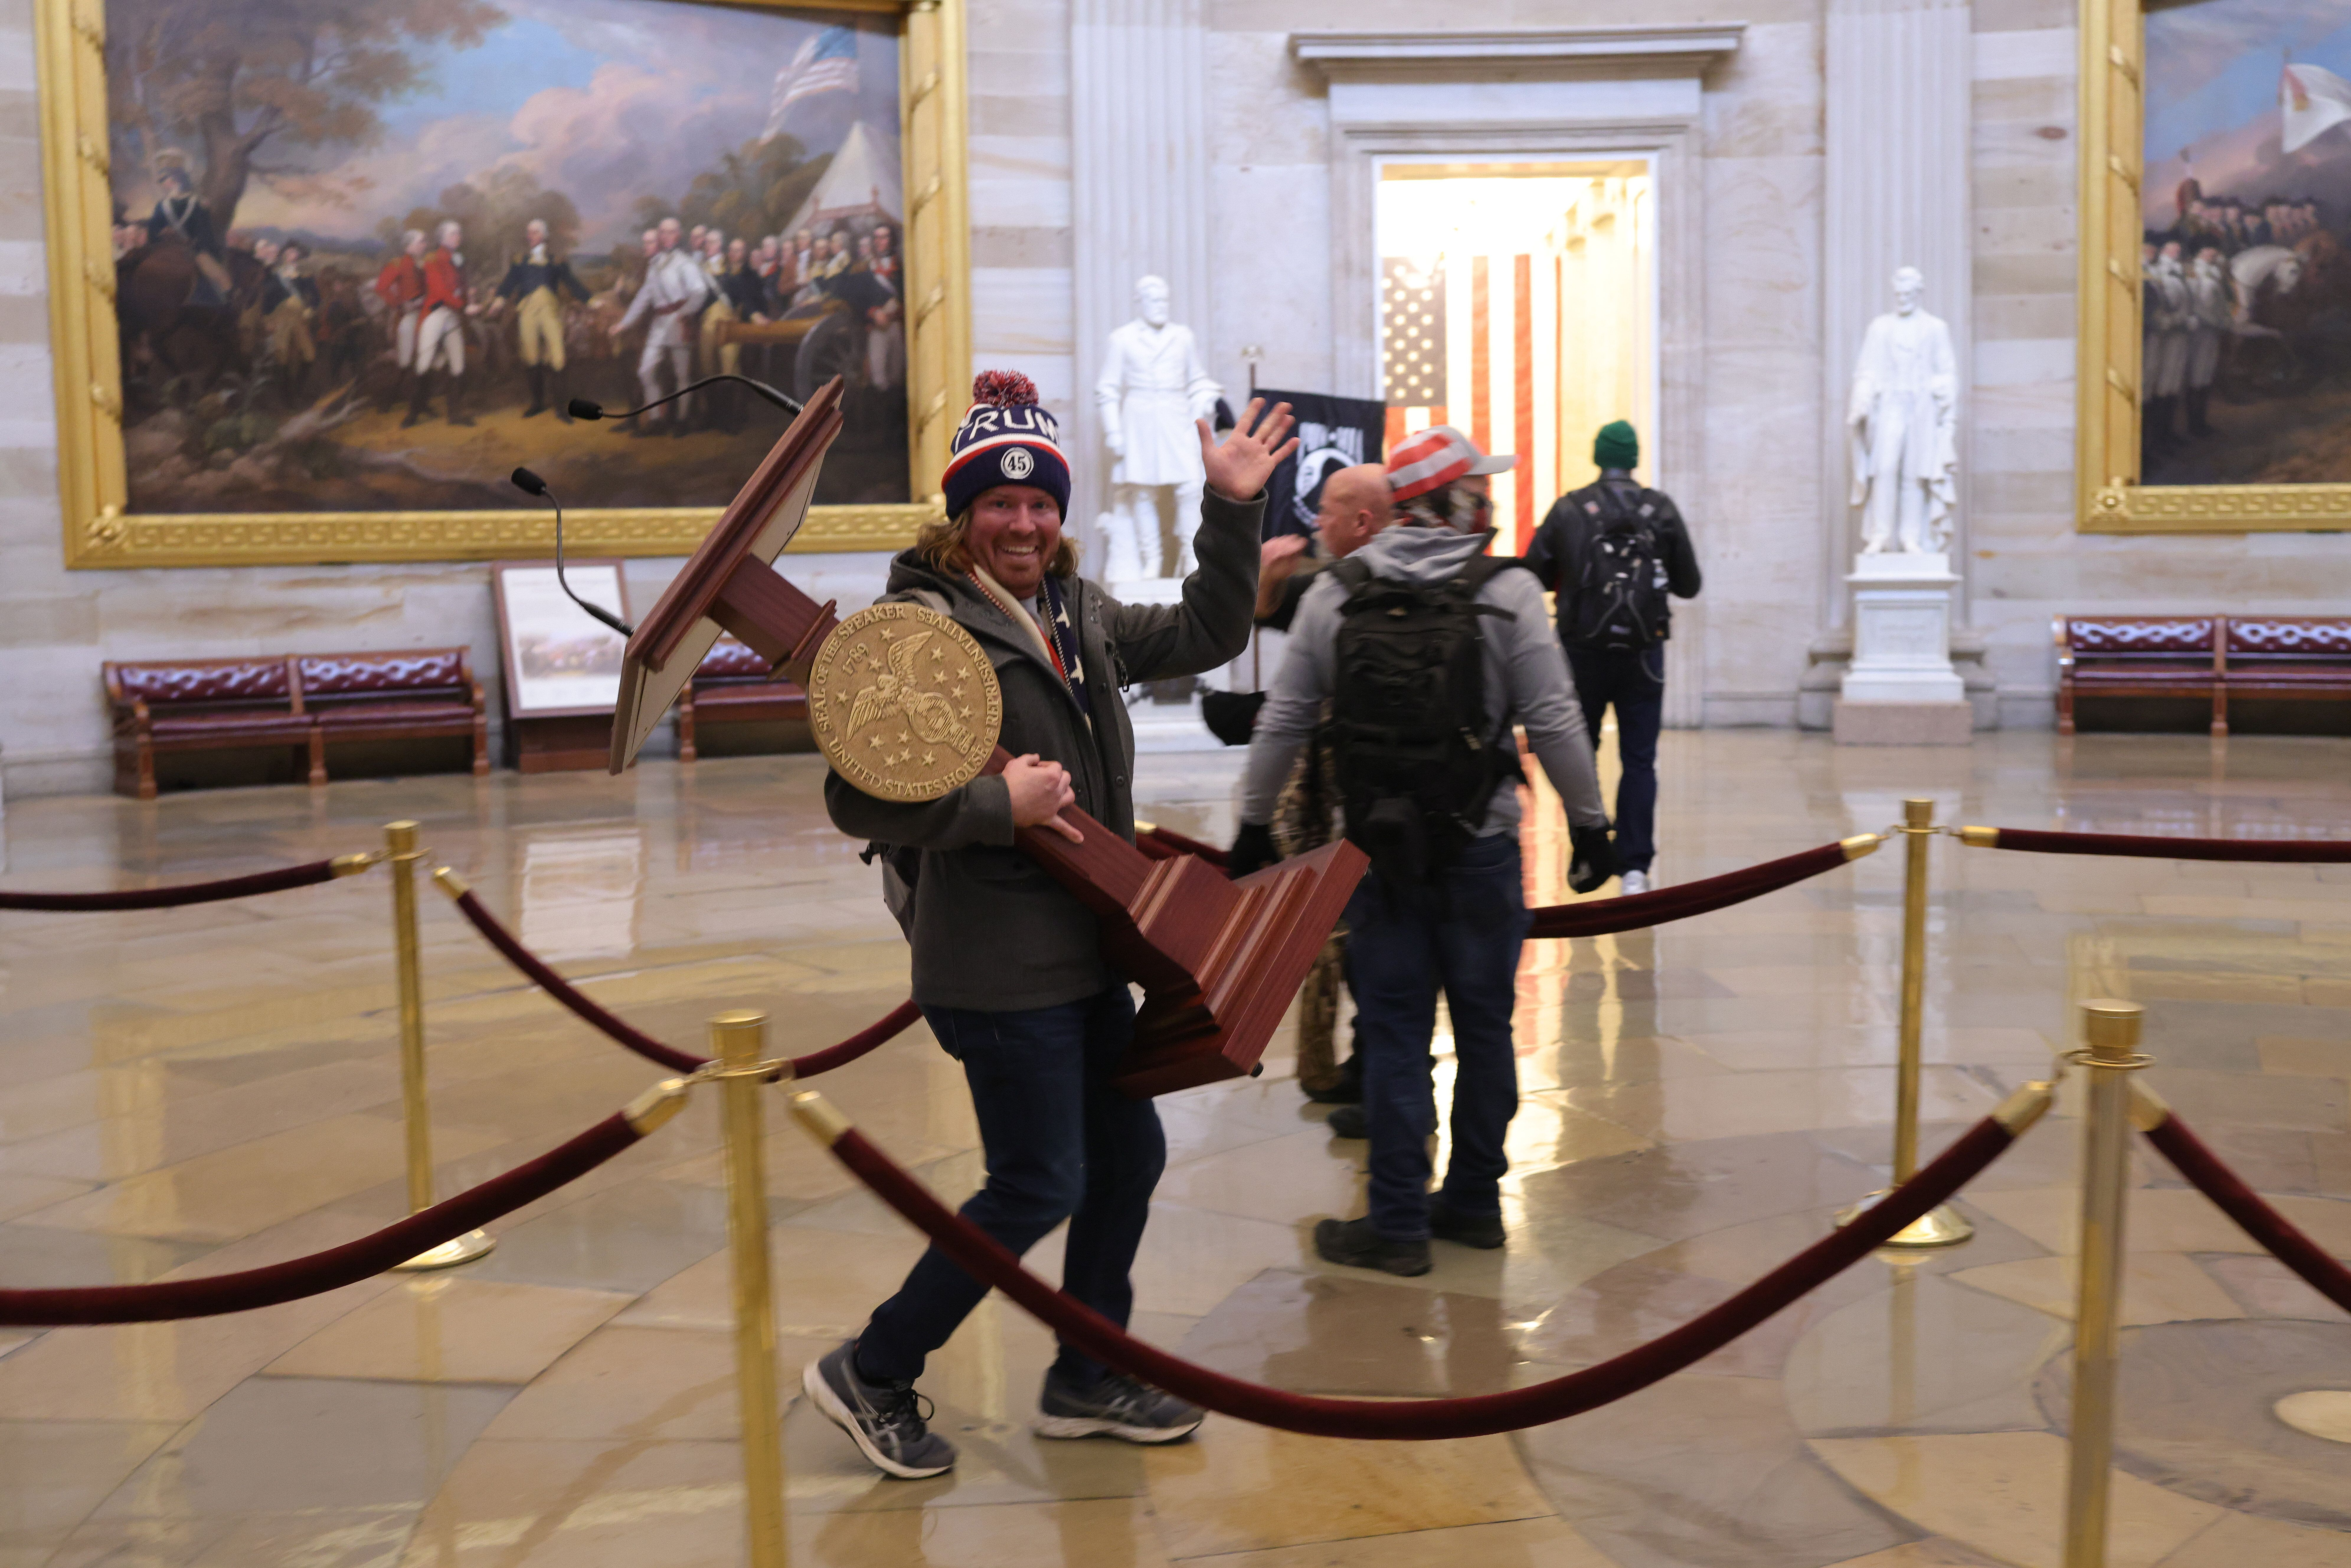 WASHINGTON, DC - JANUARY 06: Protesters enter the U.S. Capitol Building on January 06, 2021 in Washington, DC. Congress held